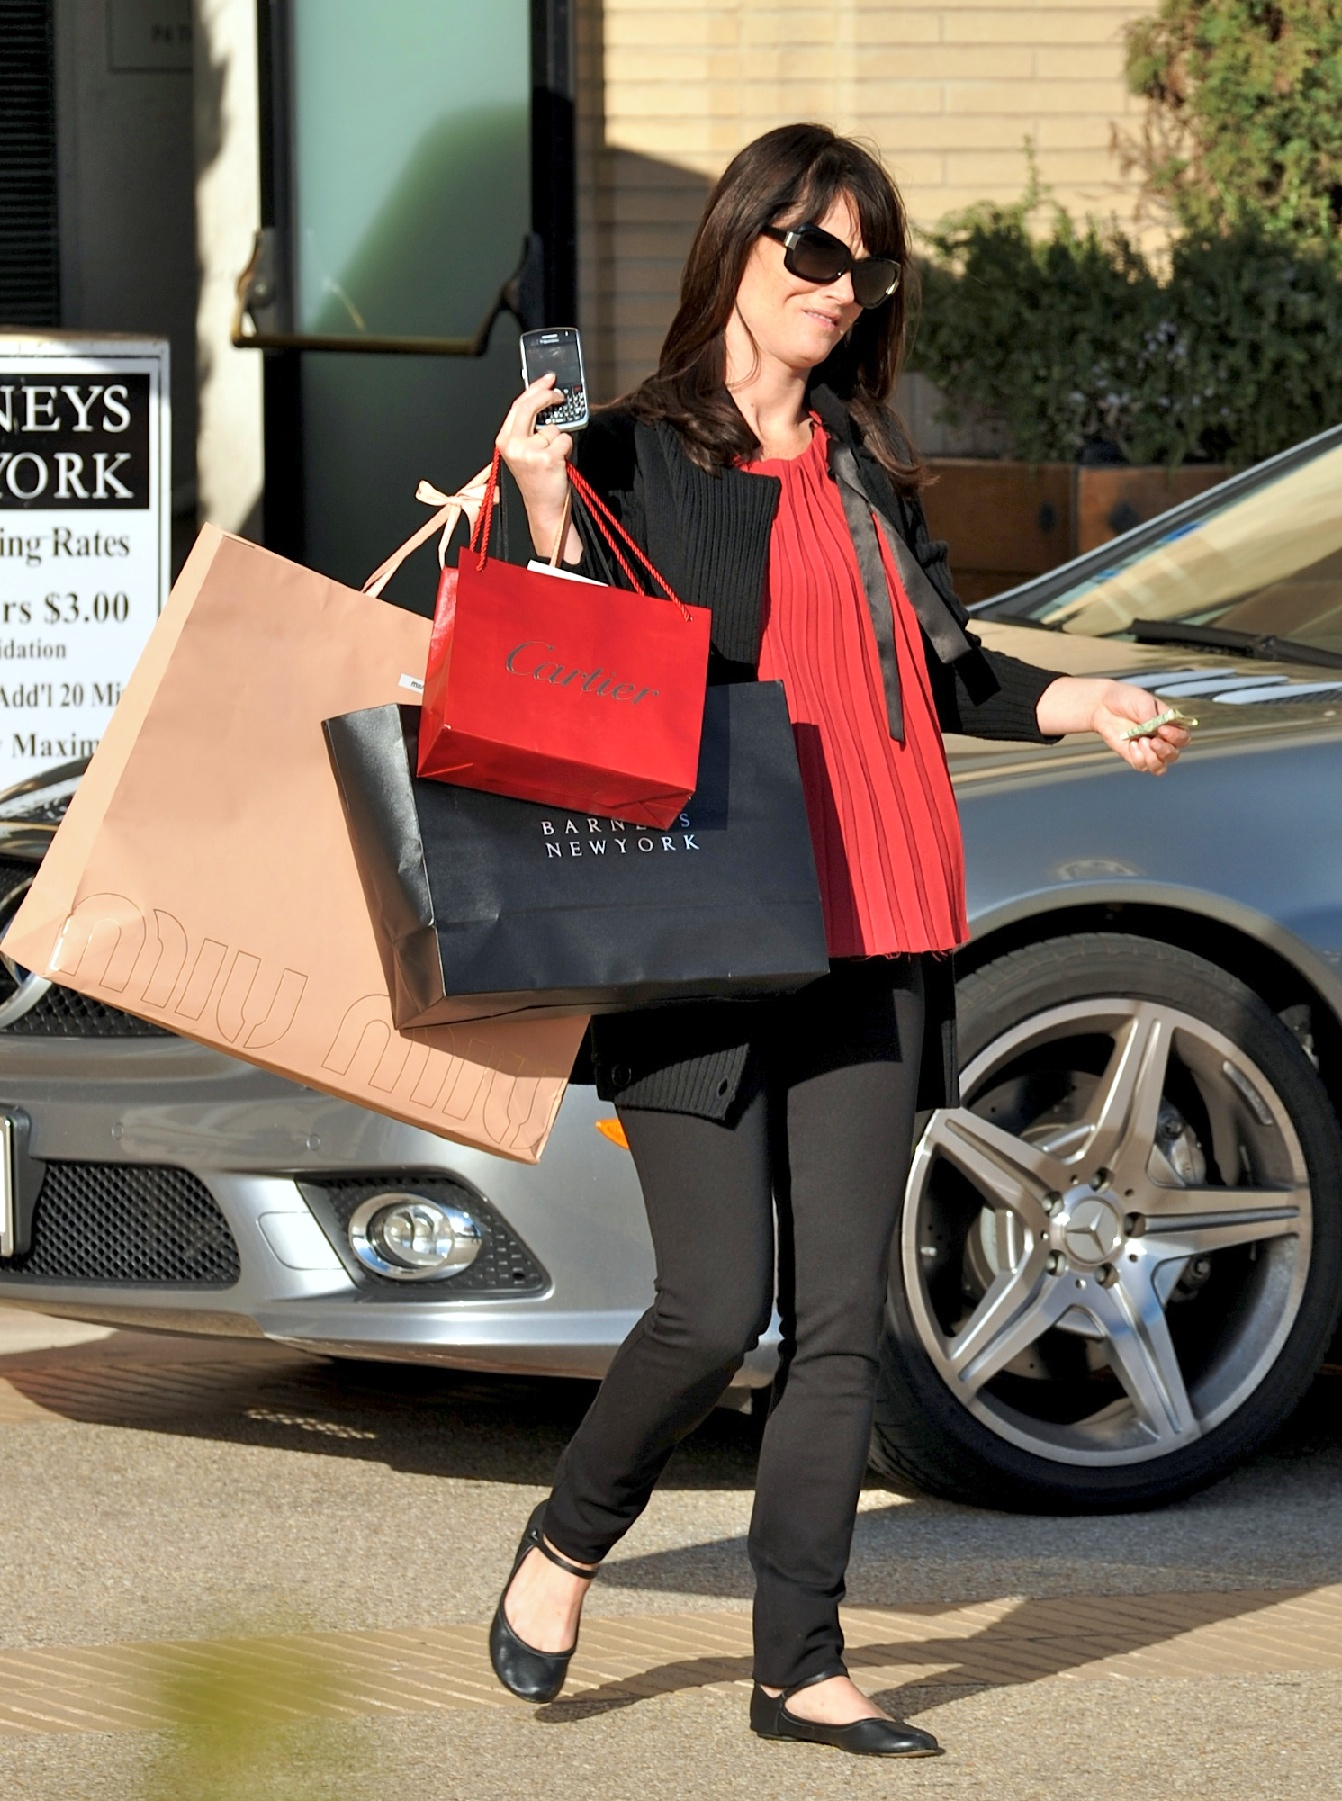 57304_Preppie_-_Robin_Tunney_carries_Cartier_and_Barney5s_bags_back_to_her_car_-_Jan._24_2010_422_122_414lo.jpg